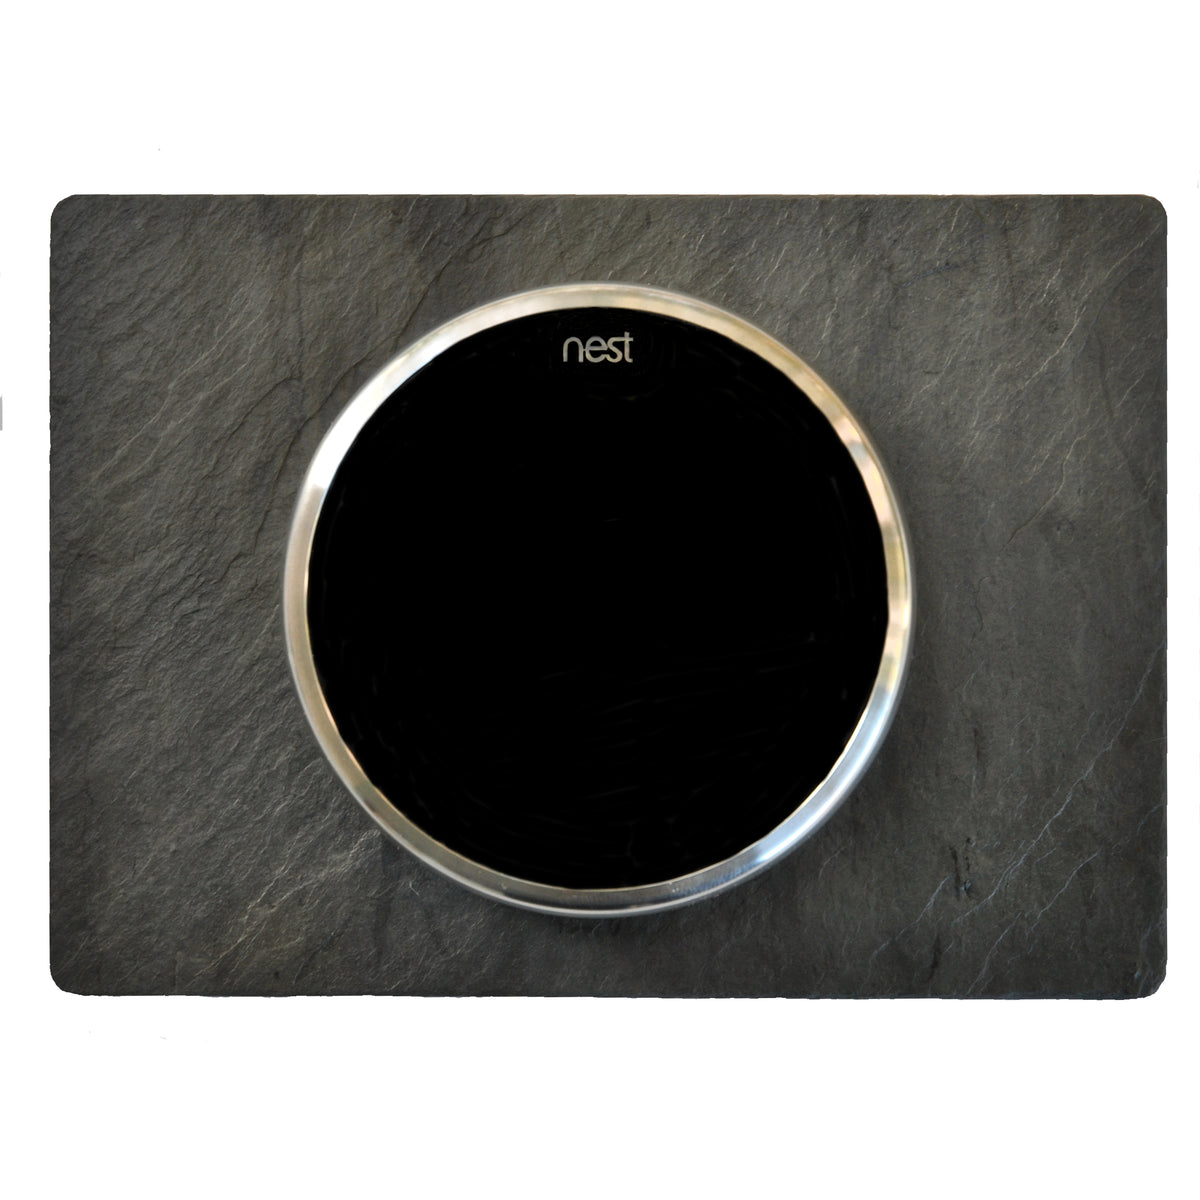 Nest Wall Plate 6 x 4.33 Inches Charcoal Gray